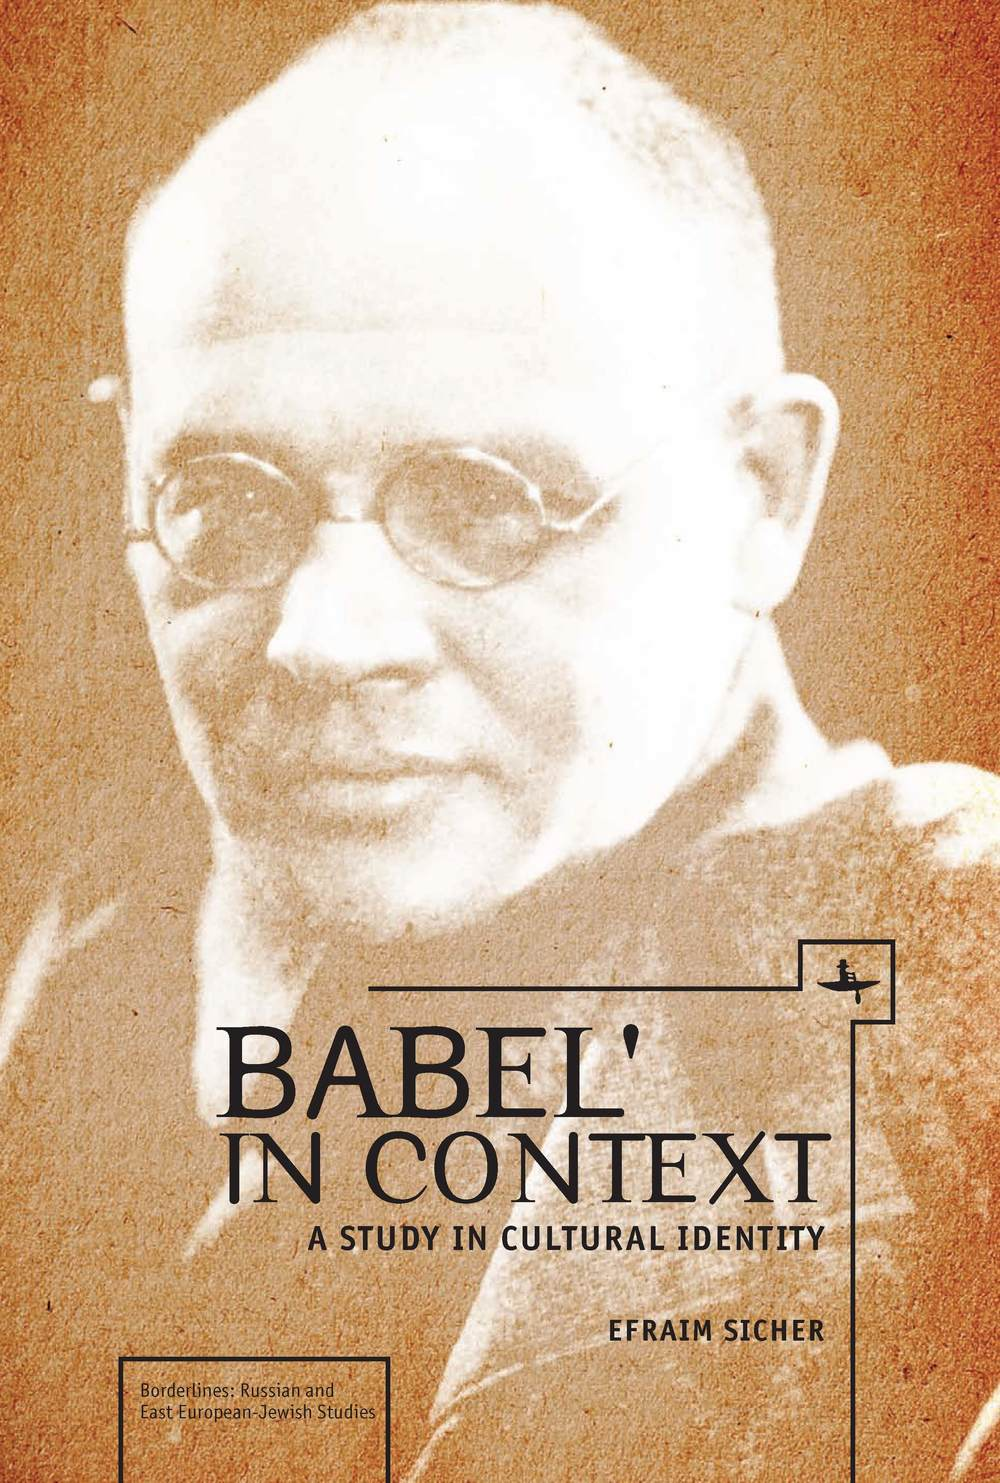 Babel' in Context: A Study in Cultural Identity  Efraim Sicher   Read on JSTOR  |  Purchase book